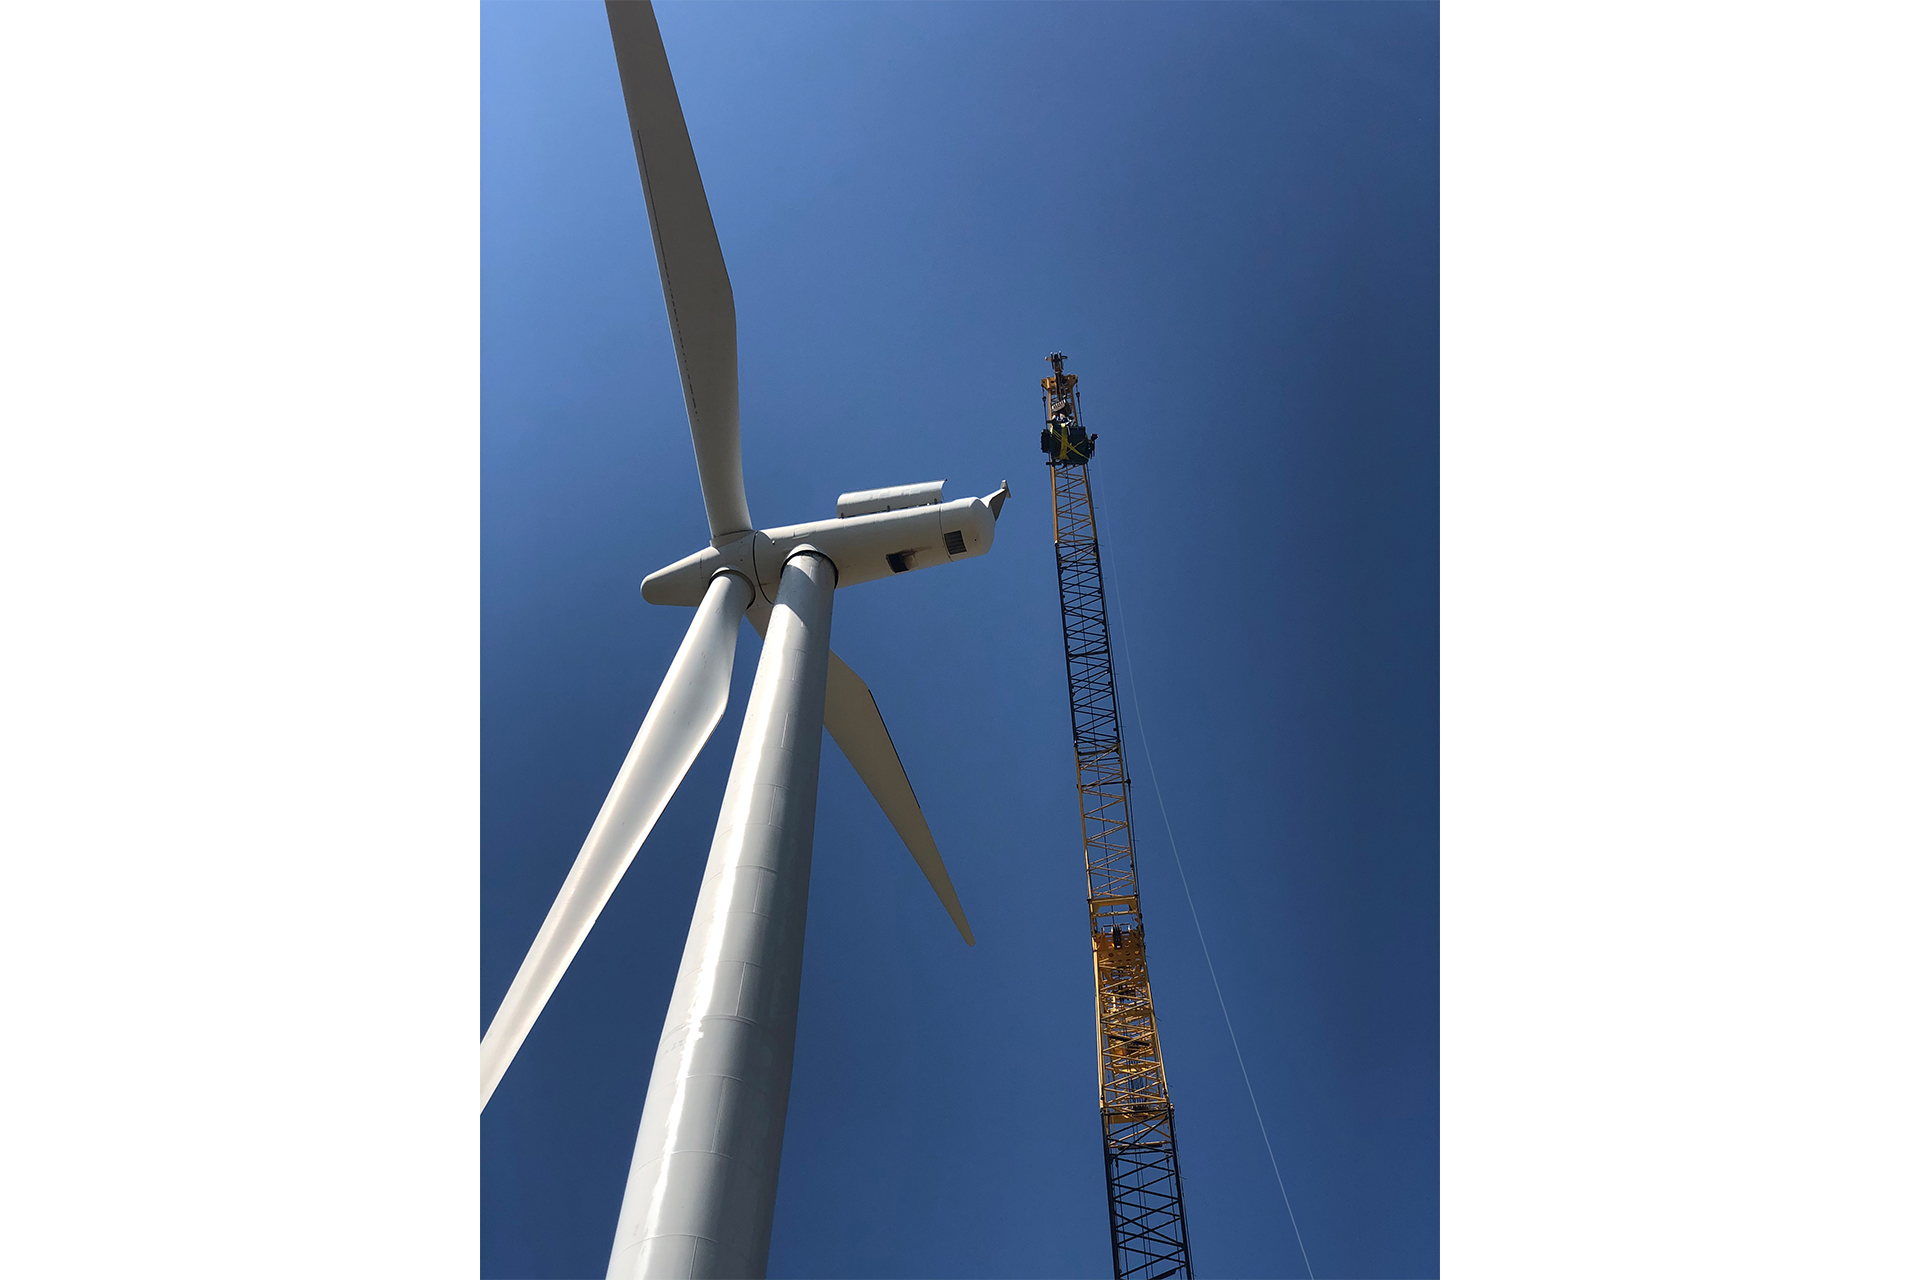 Deutsche Windtechnik completes first job for AES on Siemens 2.3 in Merkel, Texas